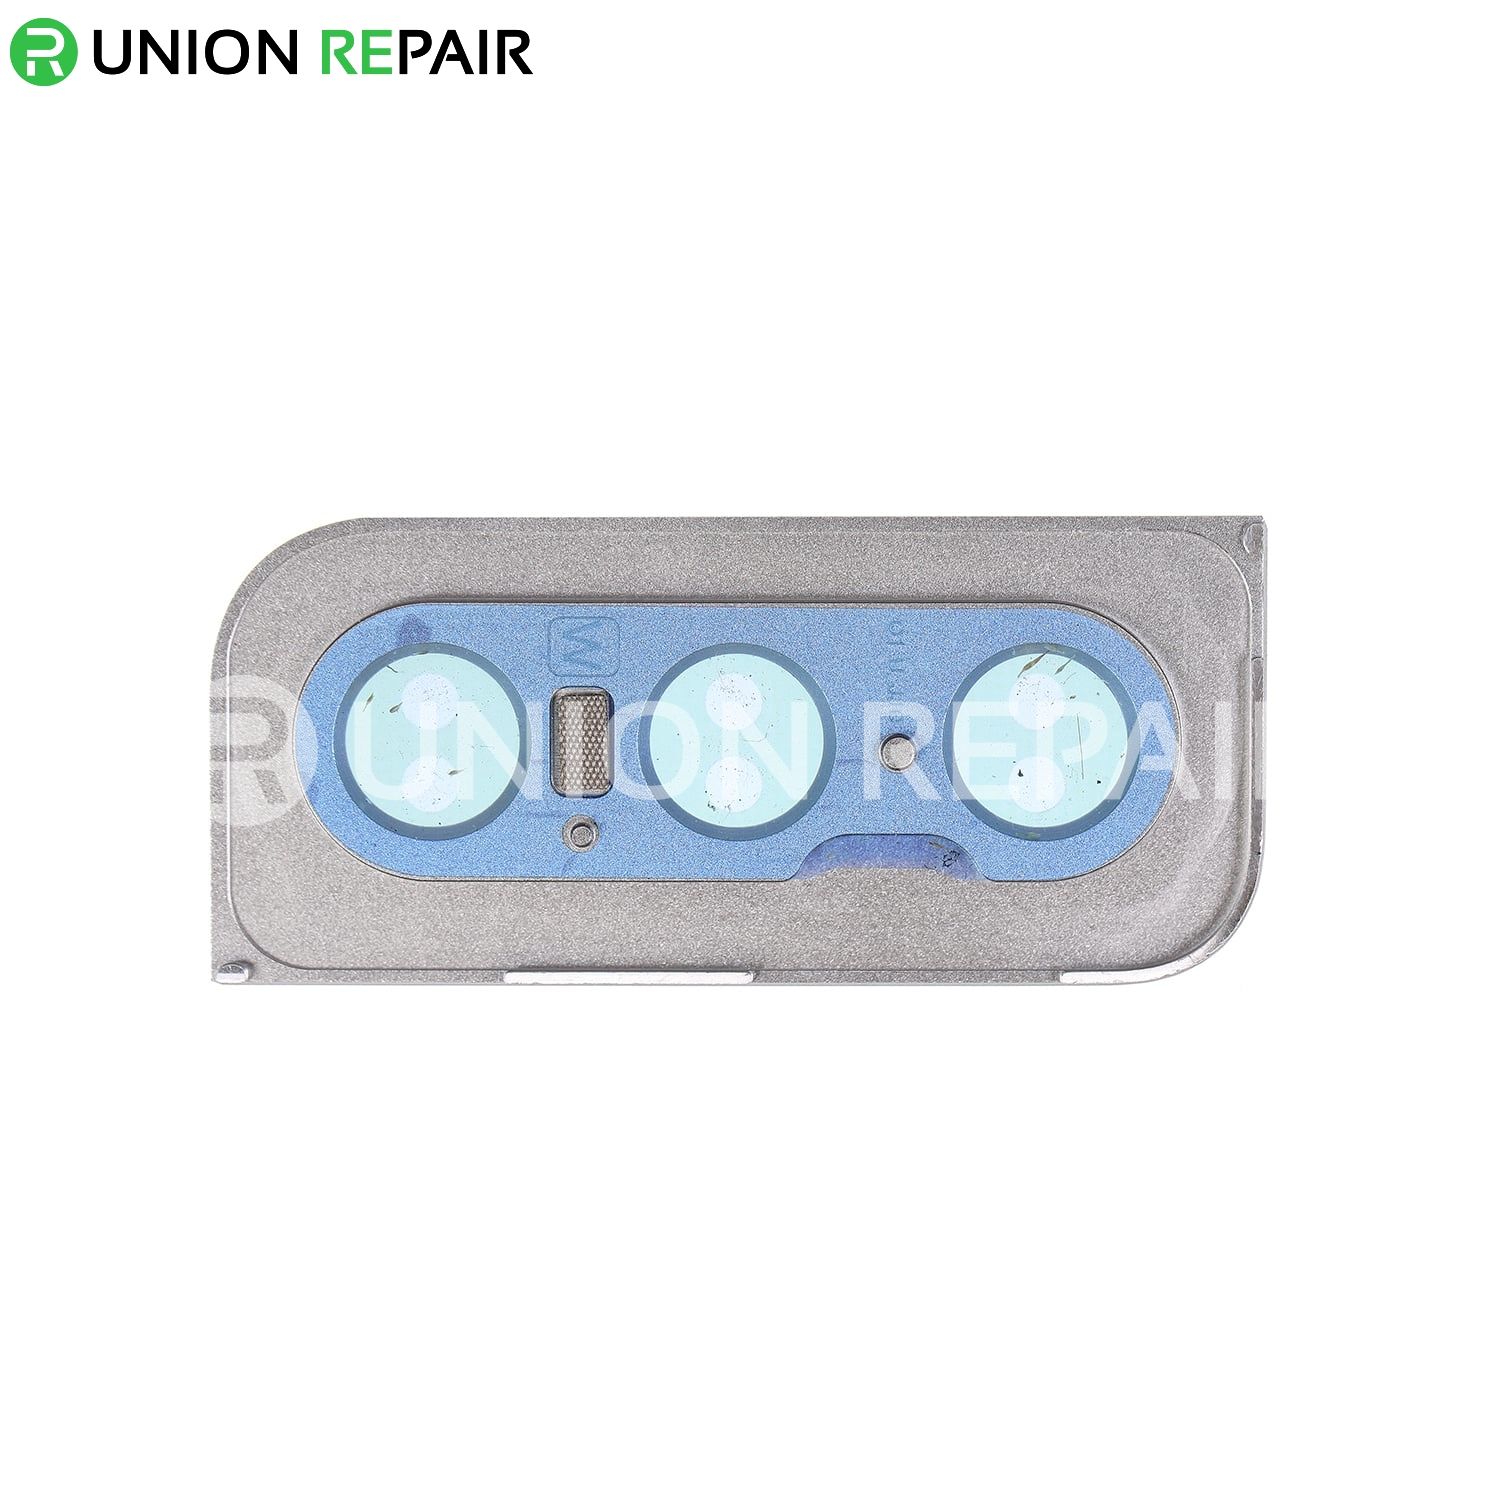 Replacement for Samsung Galaxy S21 Rear Camera Holder with Lens - White